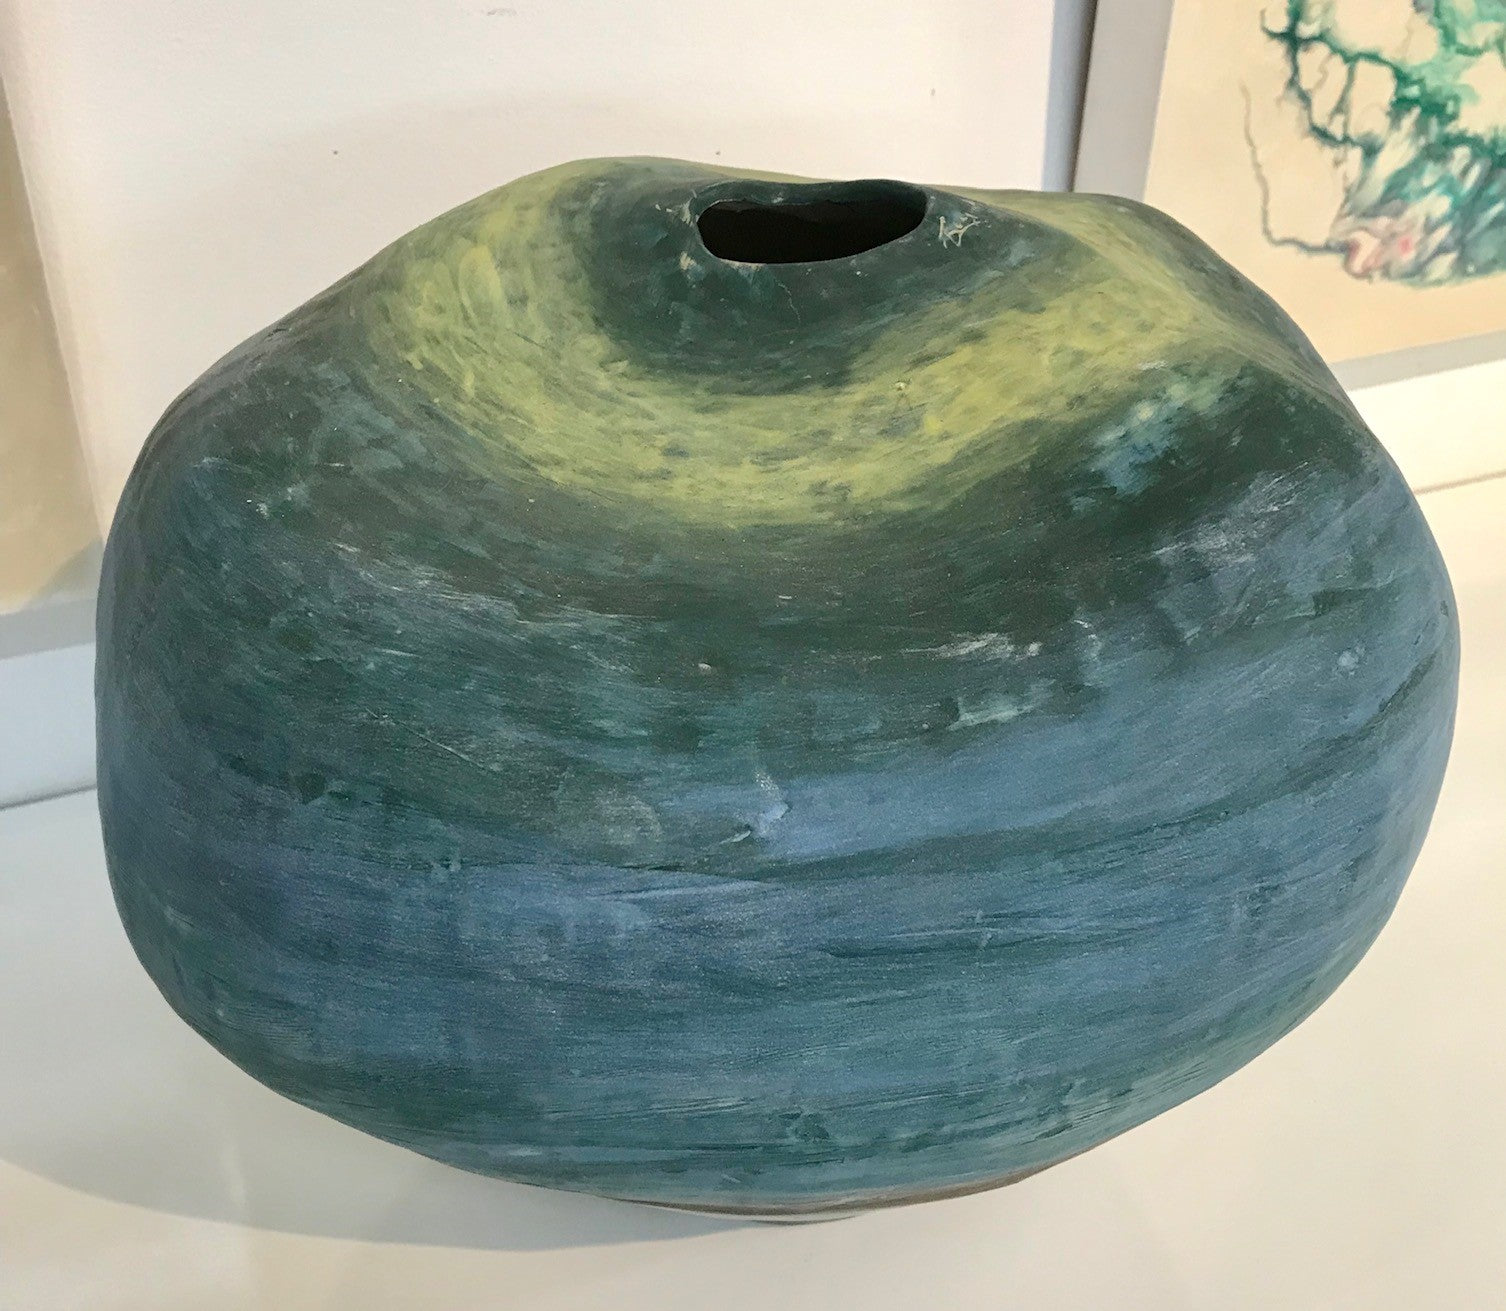 files/Organic_Blue_and_Yellow_Pot_30_x_35cm_Stoneware_1_000.jpg